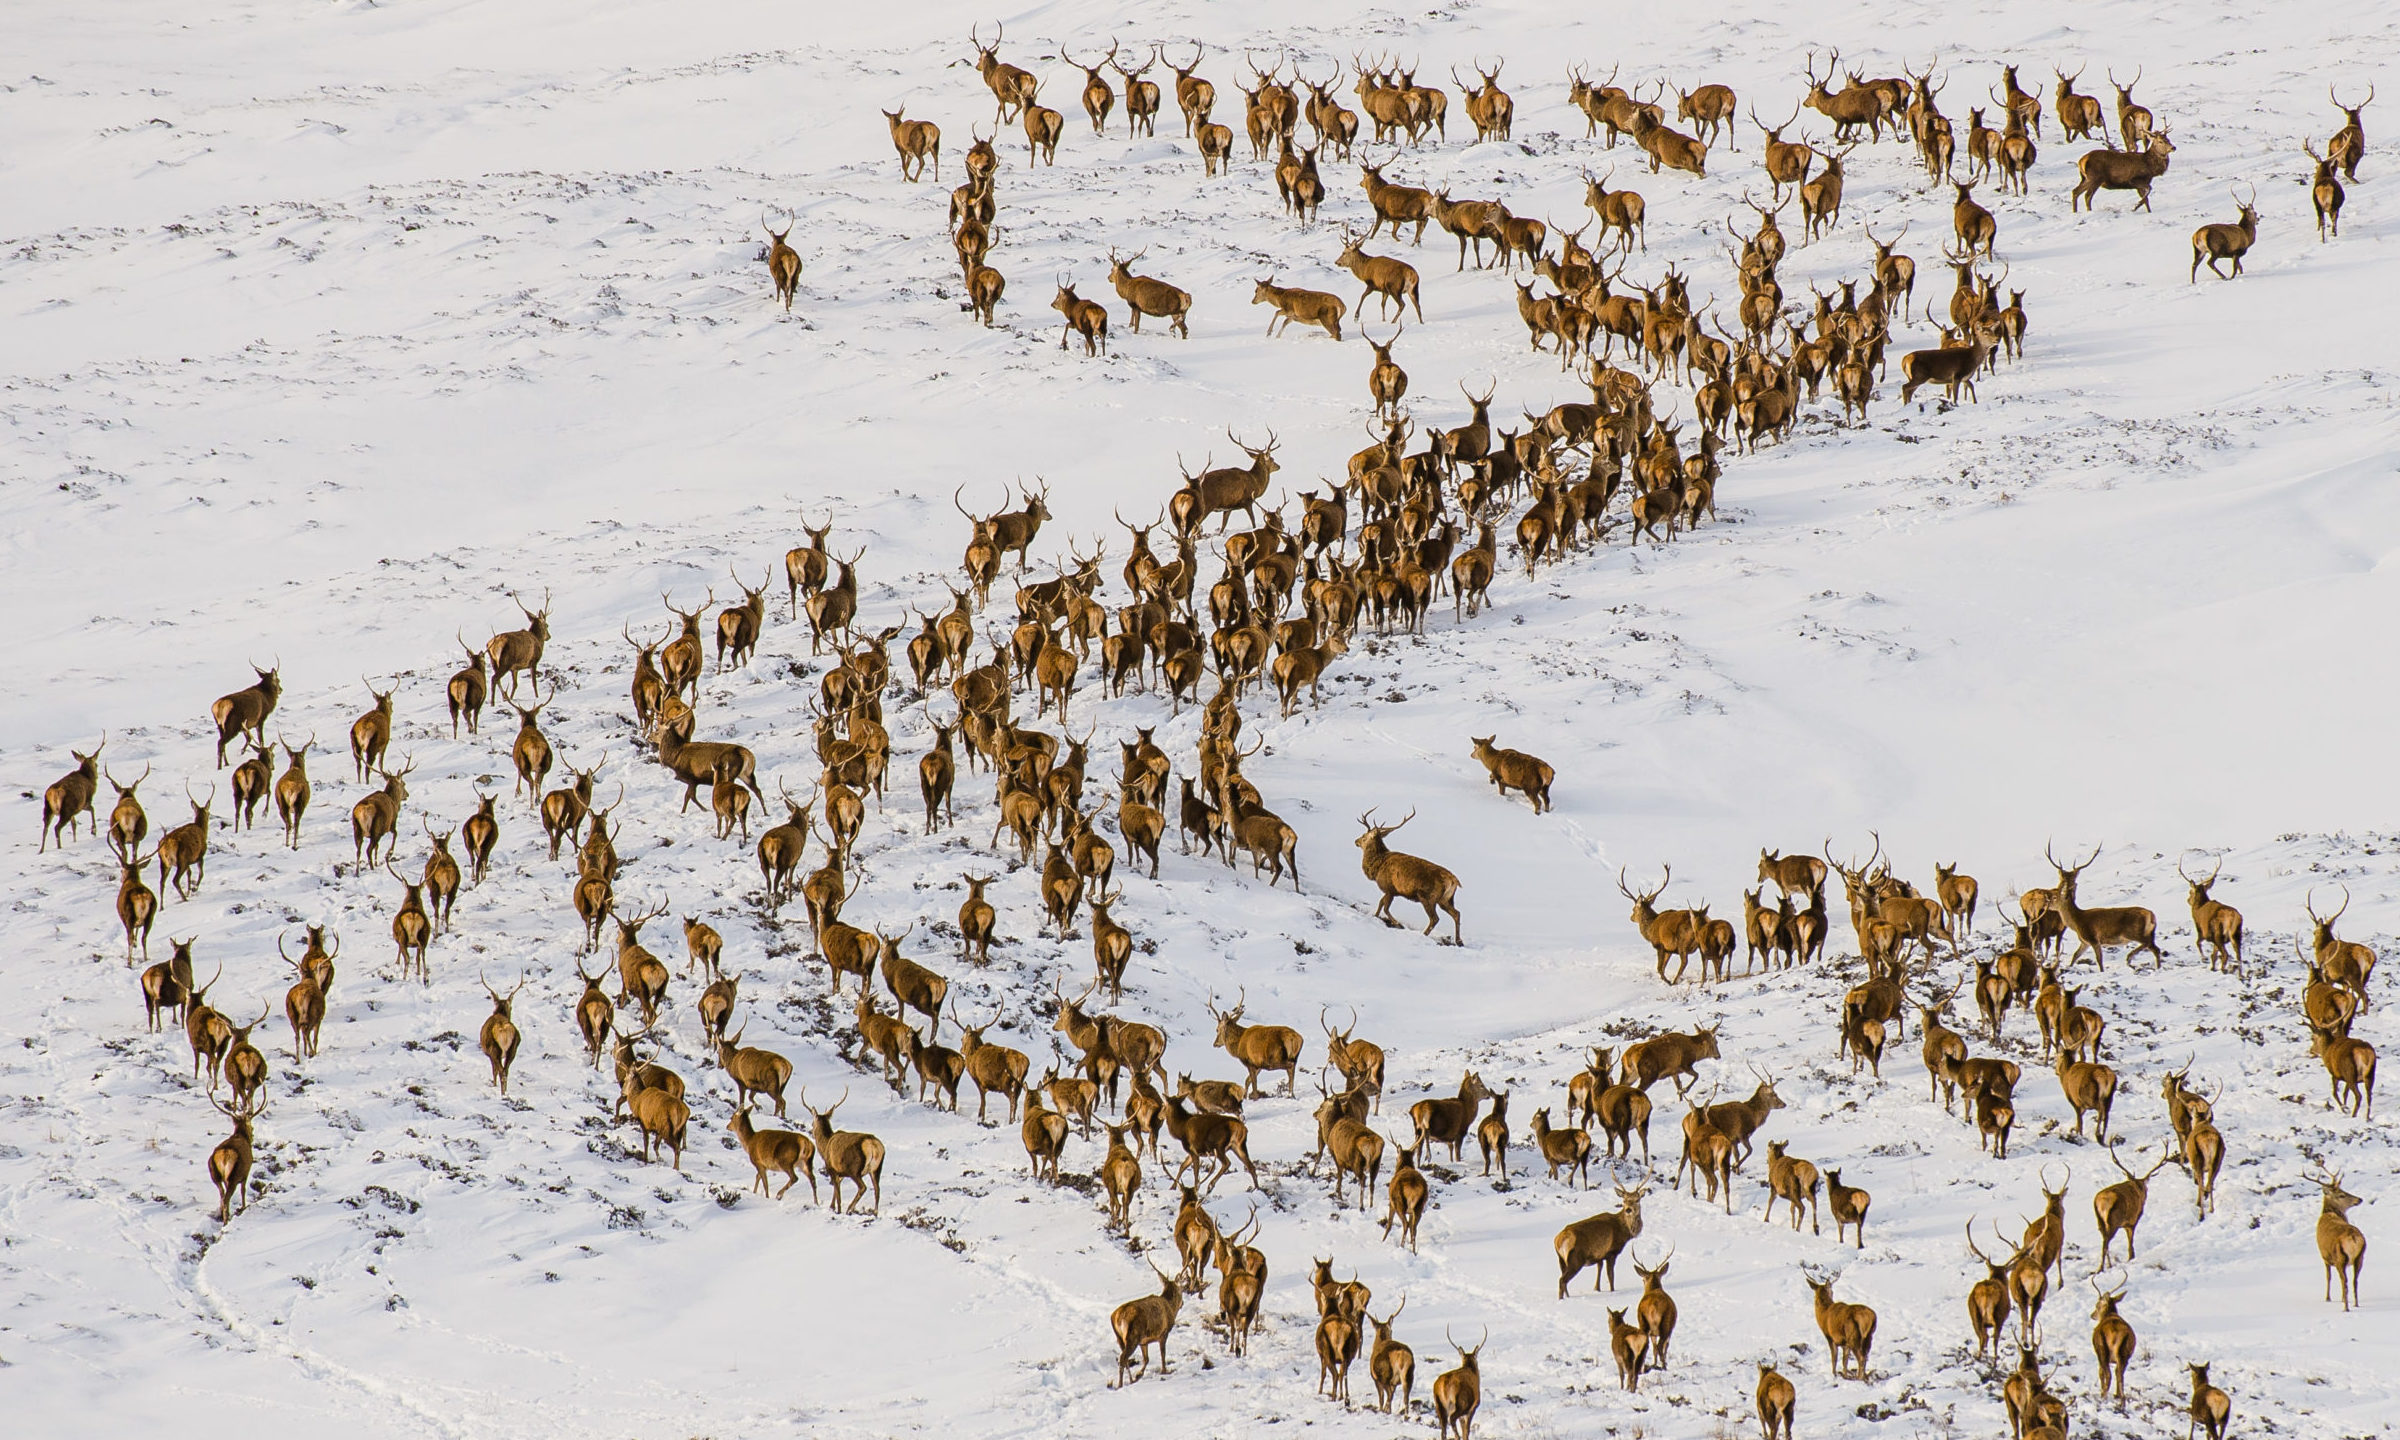 A herd of stags and hinds are spotted in the snowy Glenshee mountains in Scotland.  Credit: Euan Cherry